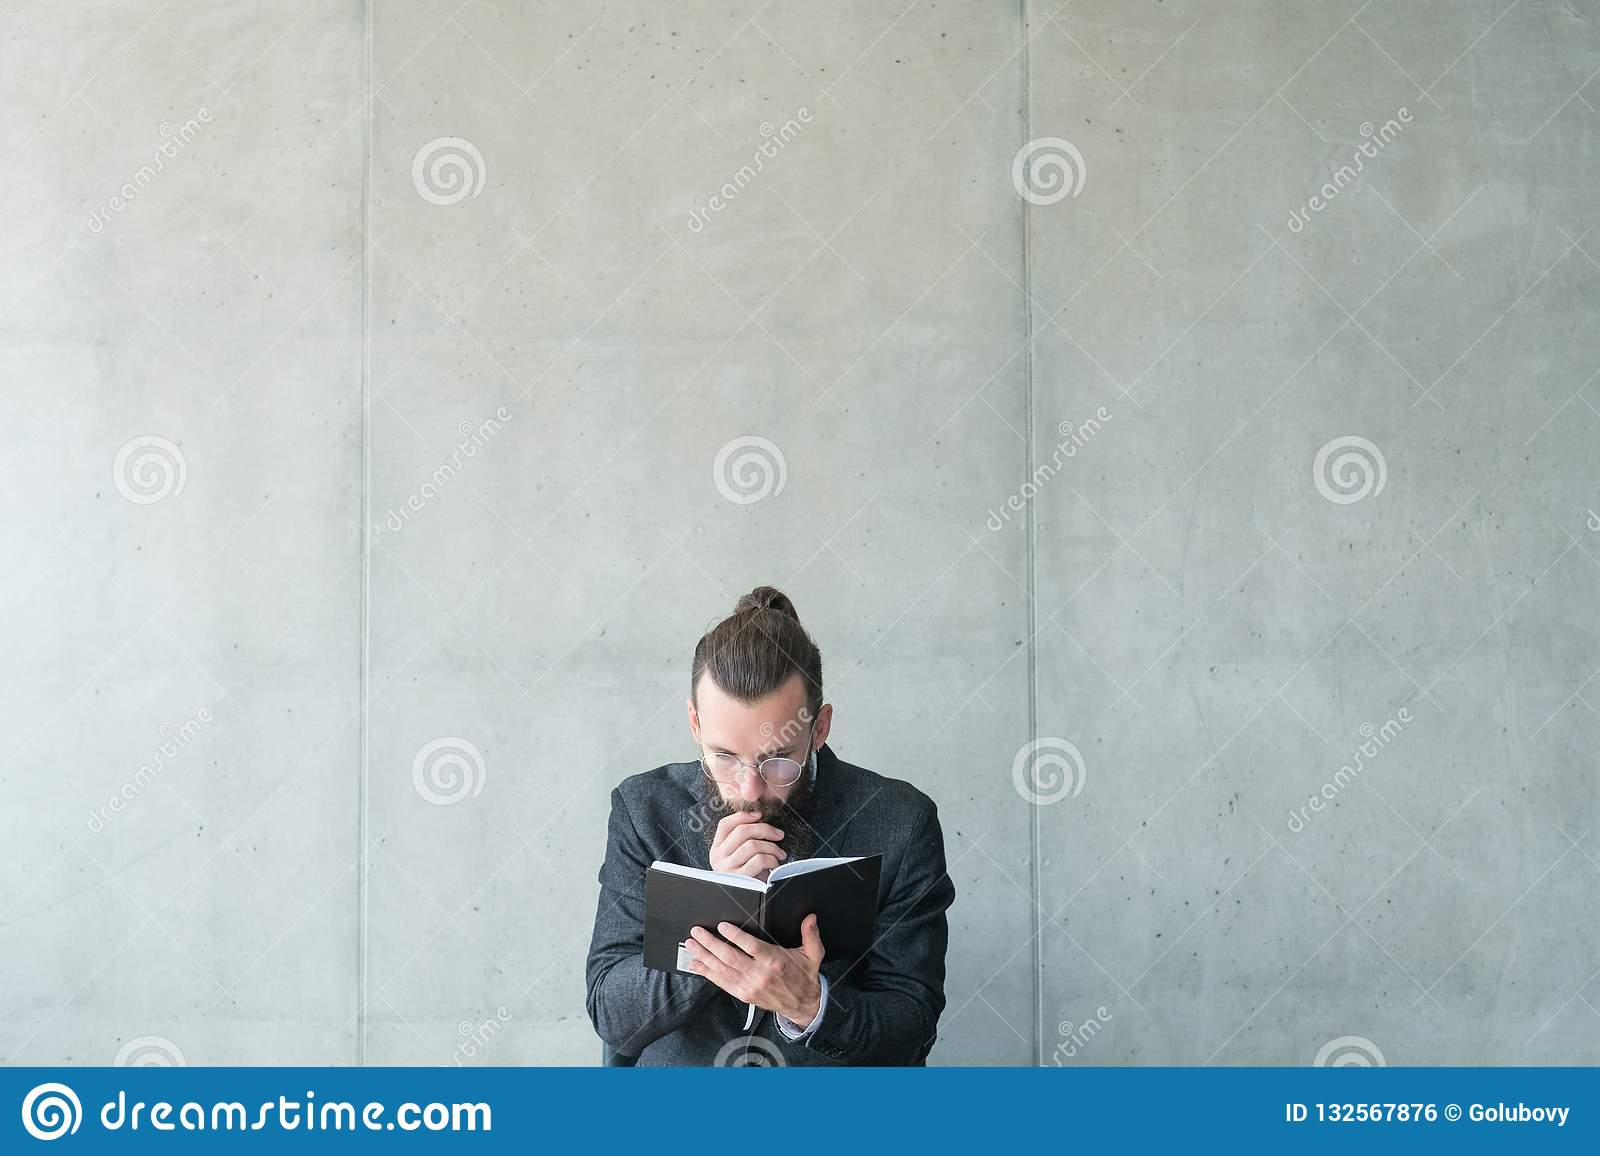 Man focused read education knowledge information